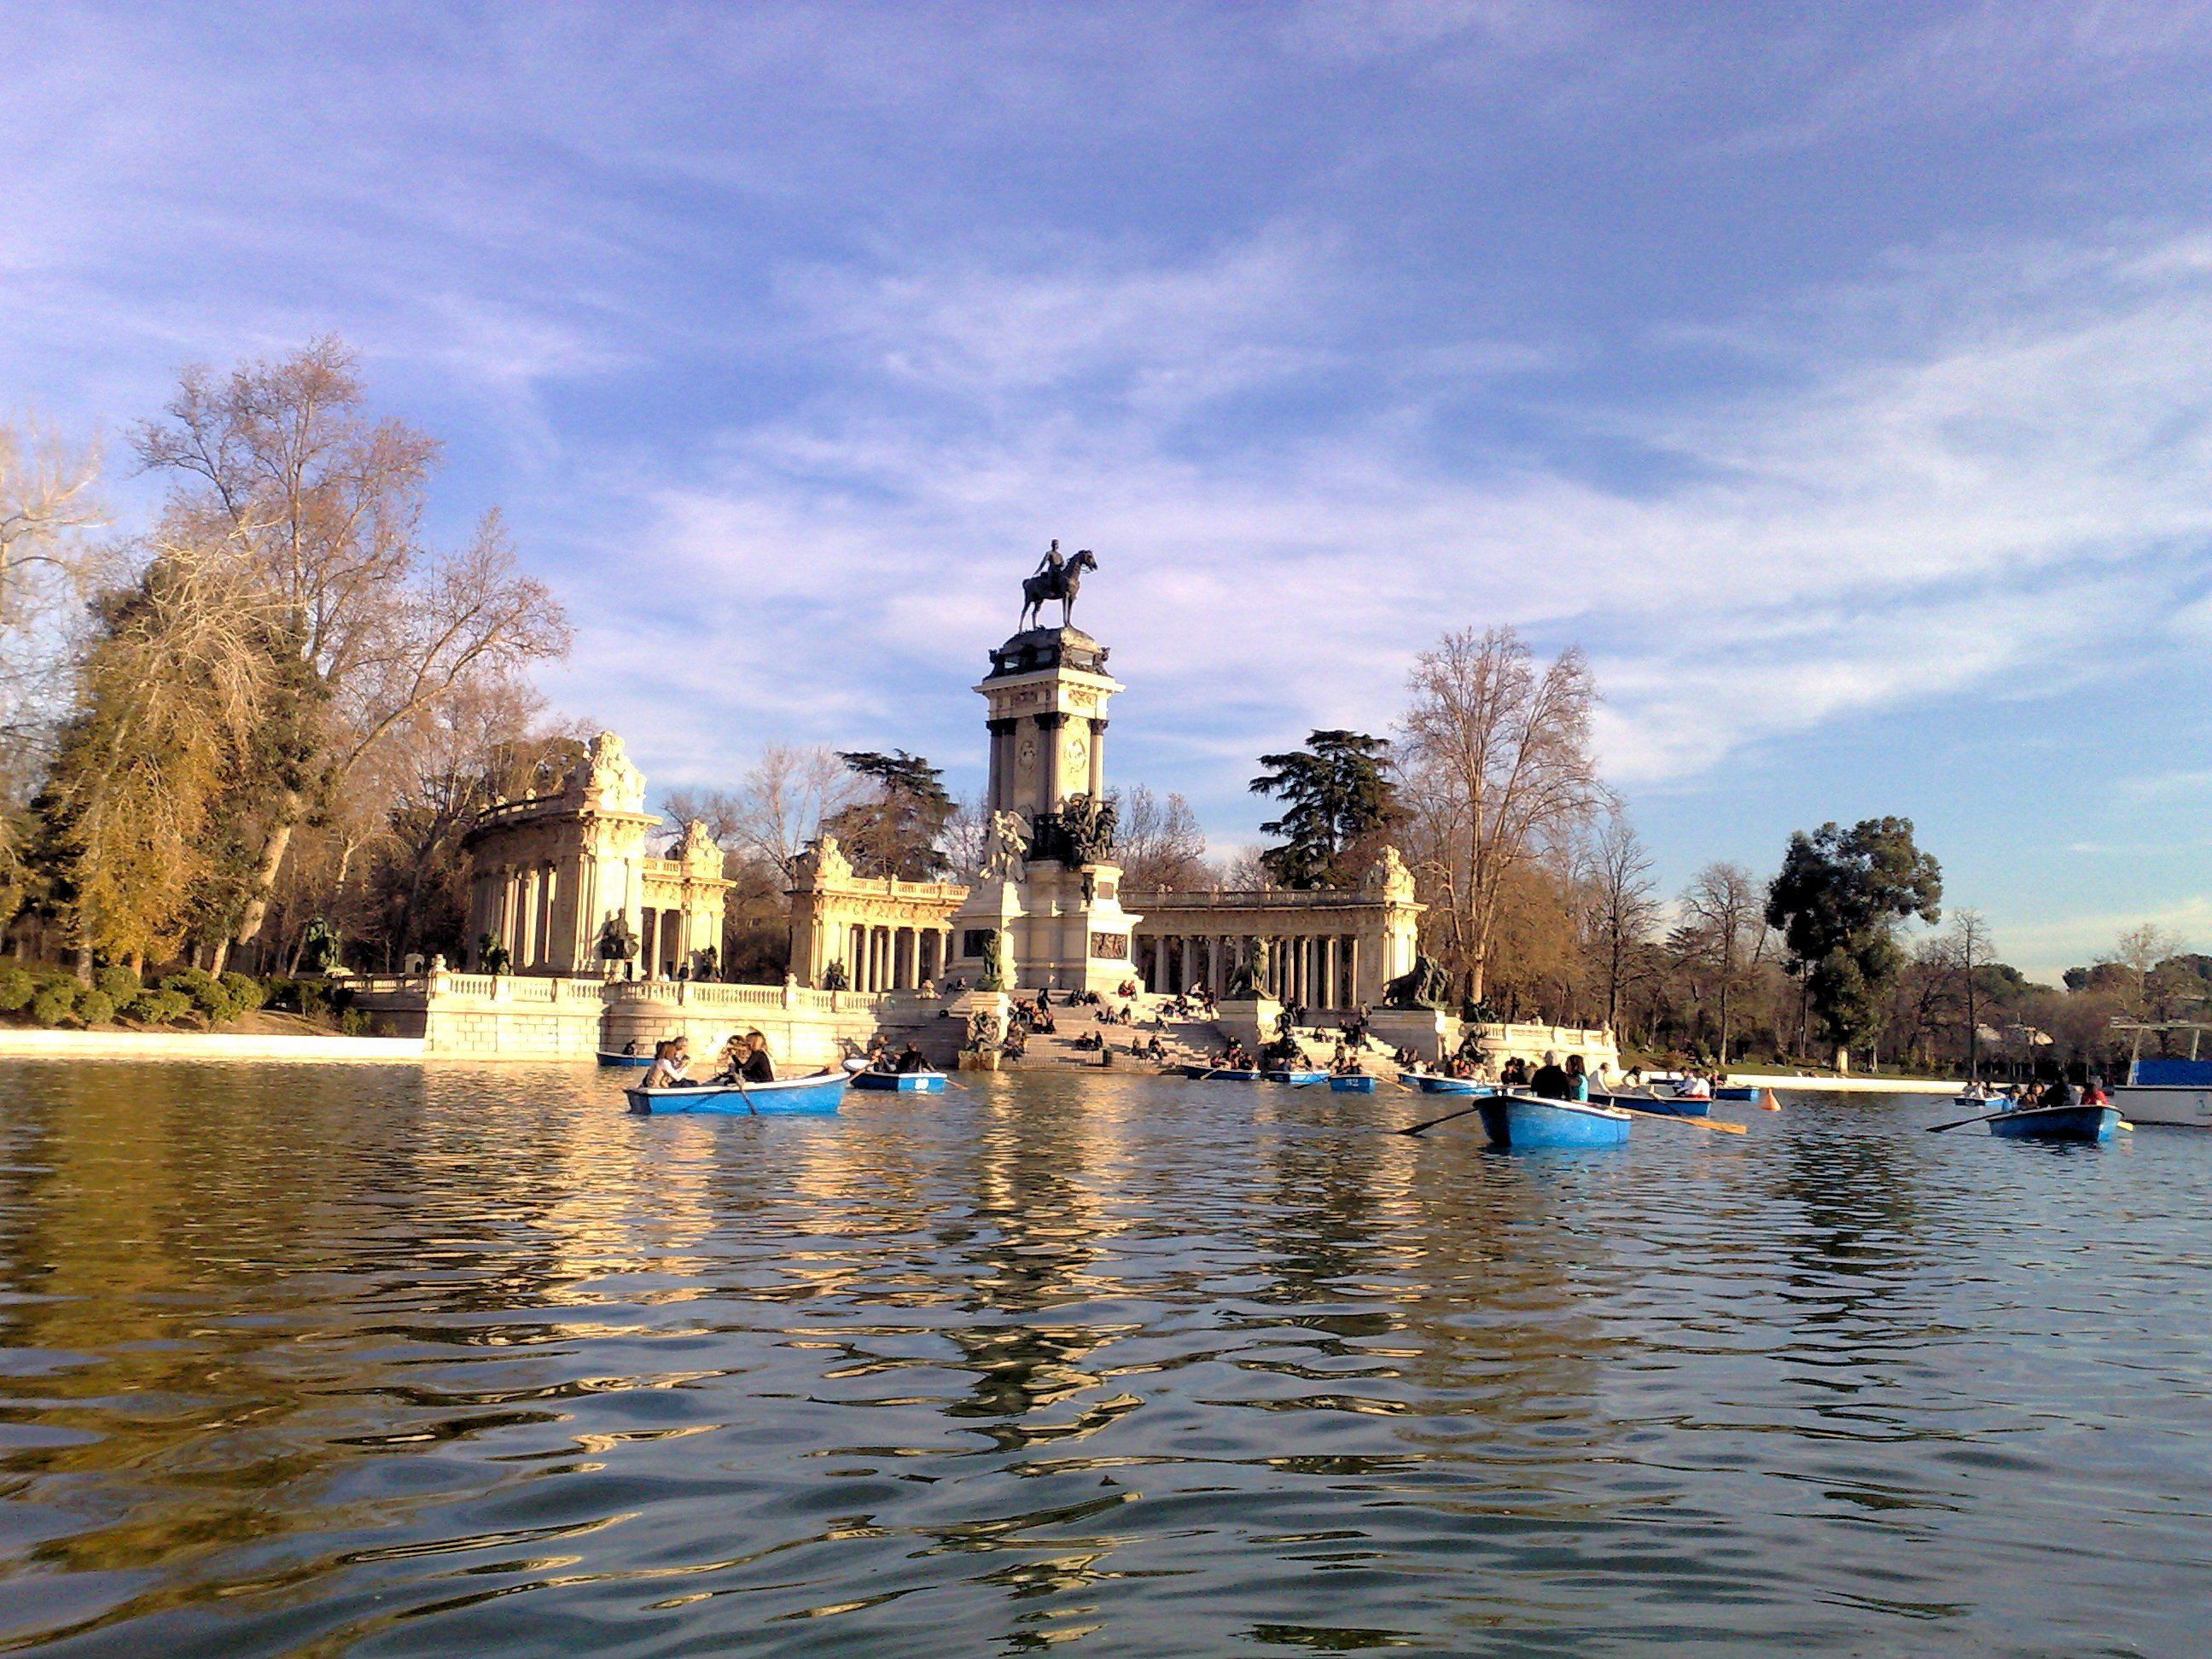 Parque del retiro, madrid, spain photo